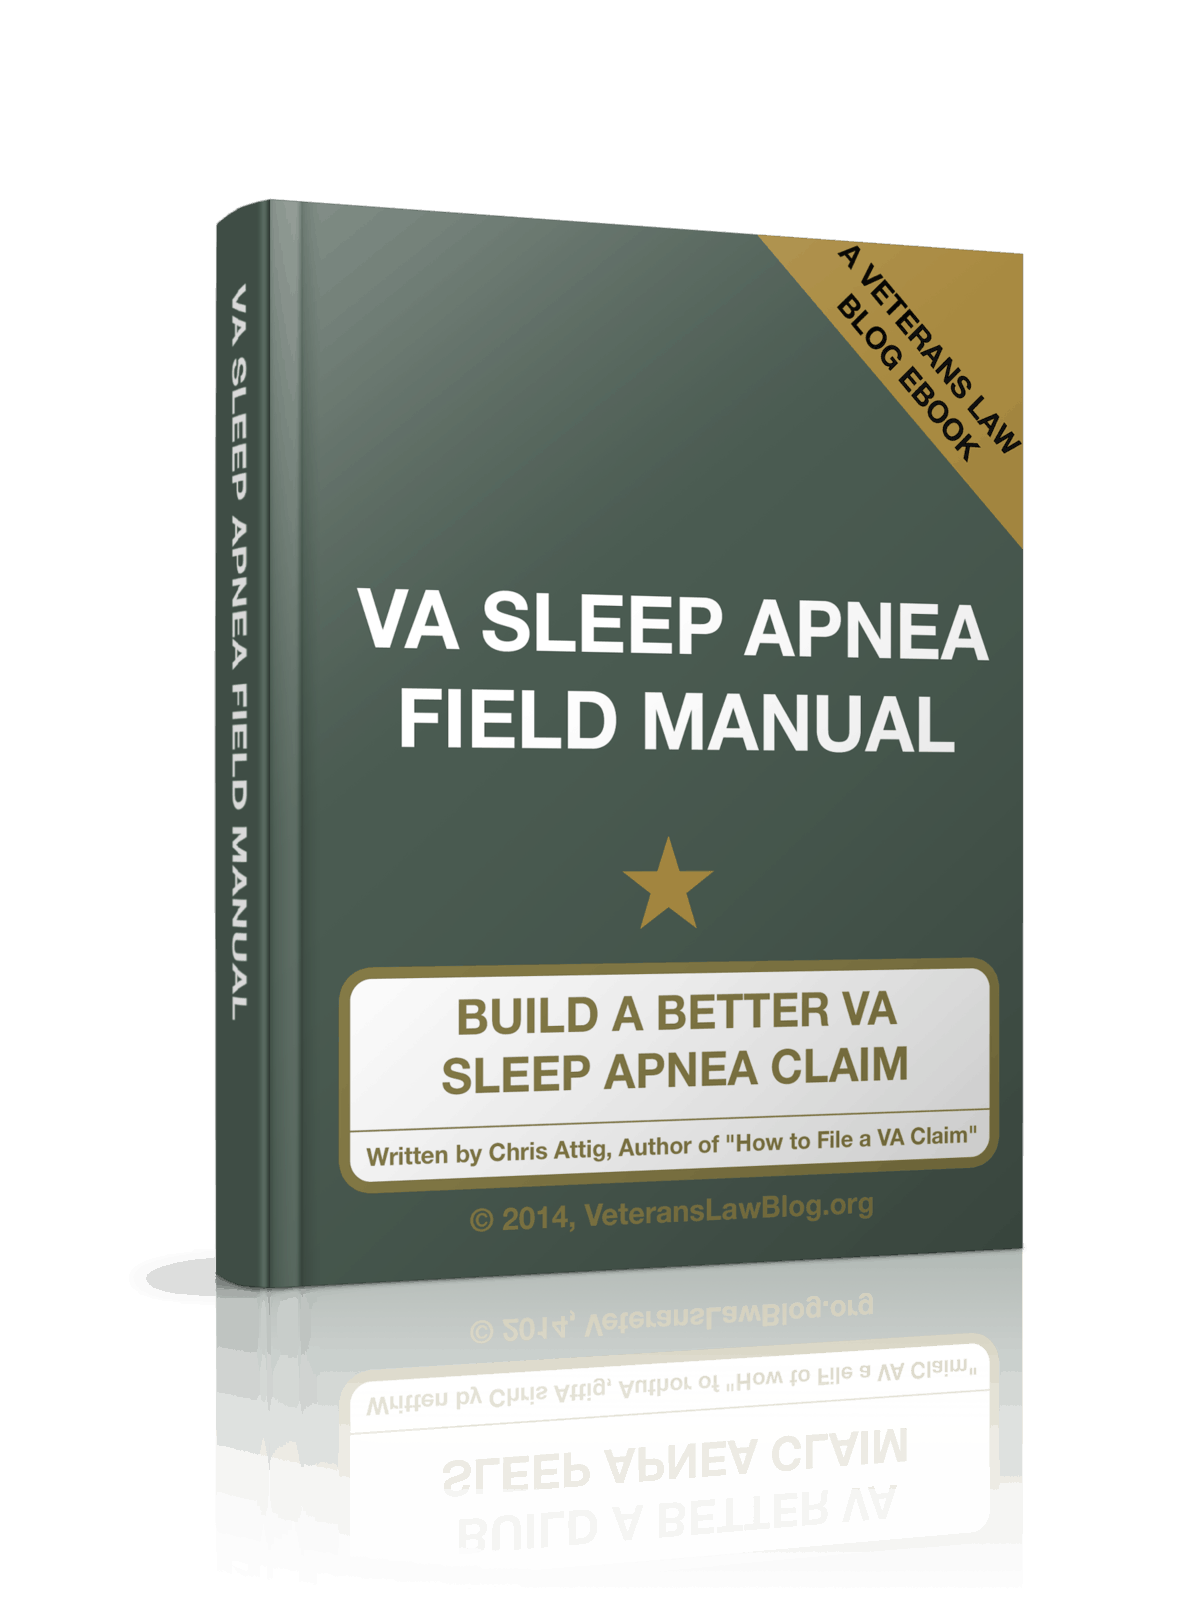 VA Sleep Apnea Claims Ratings   the Rules are Changing